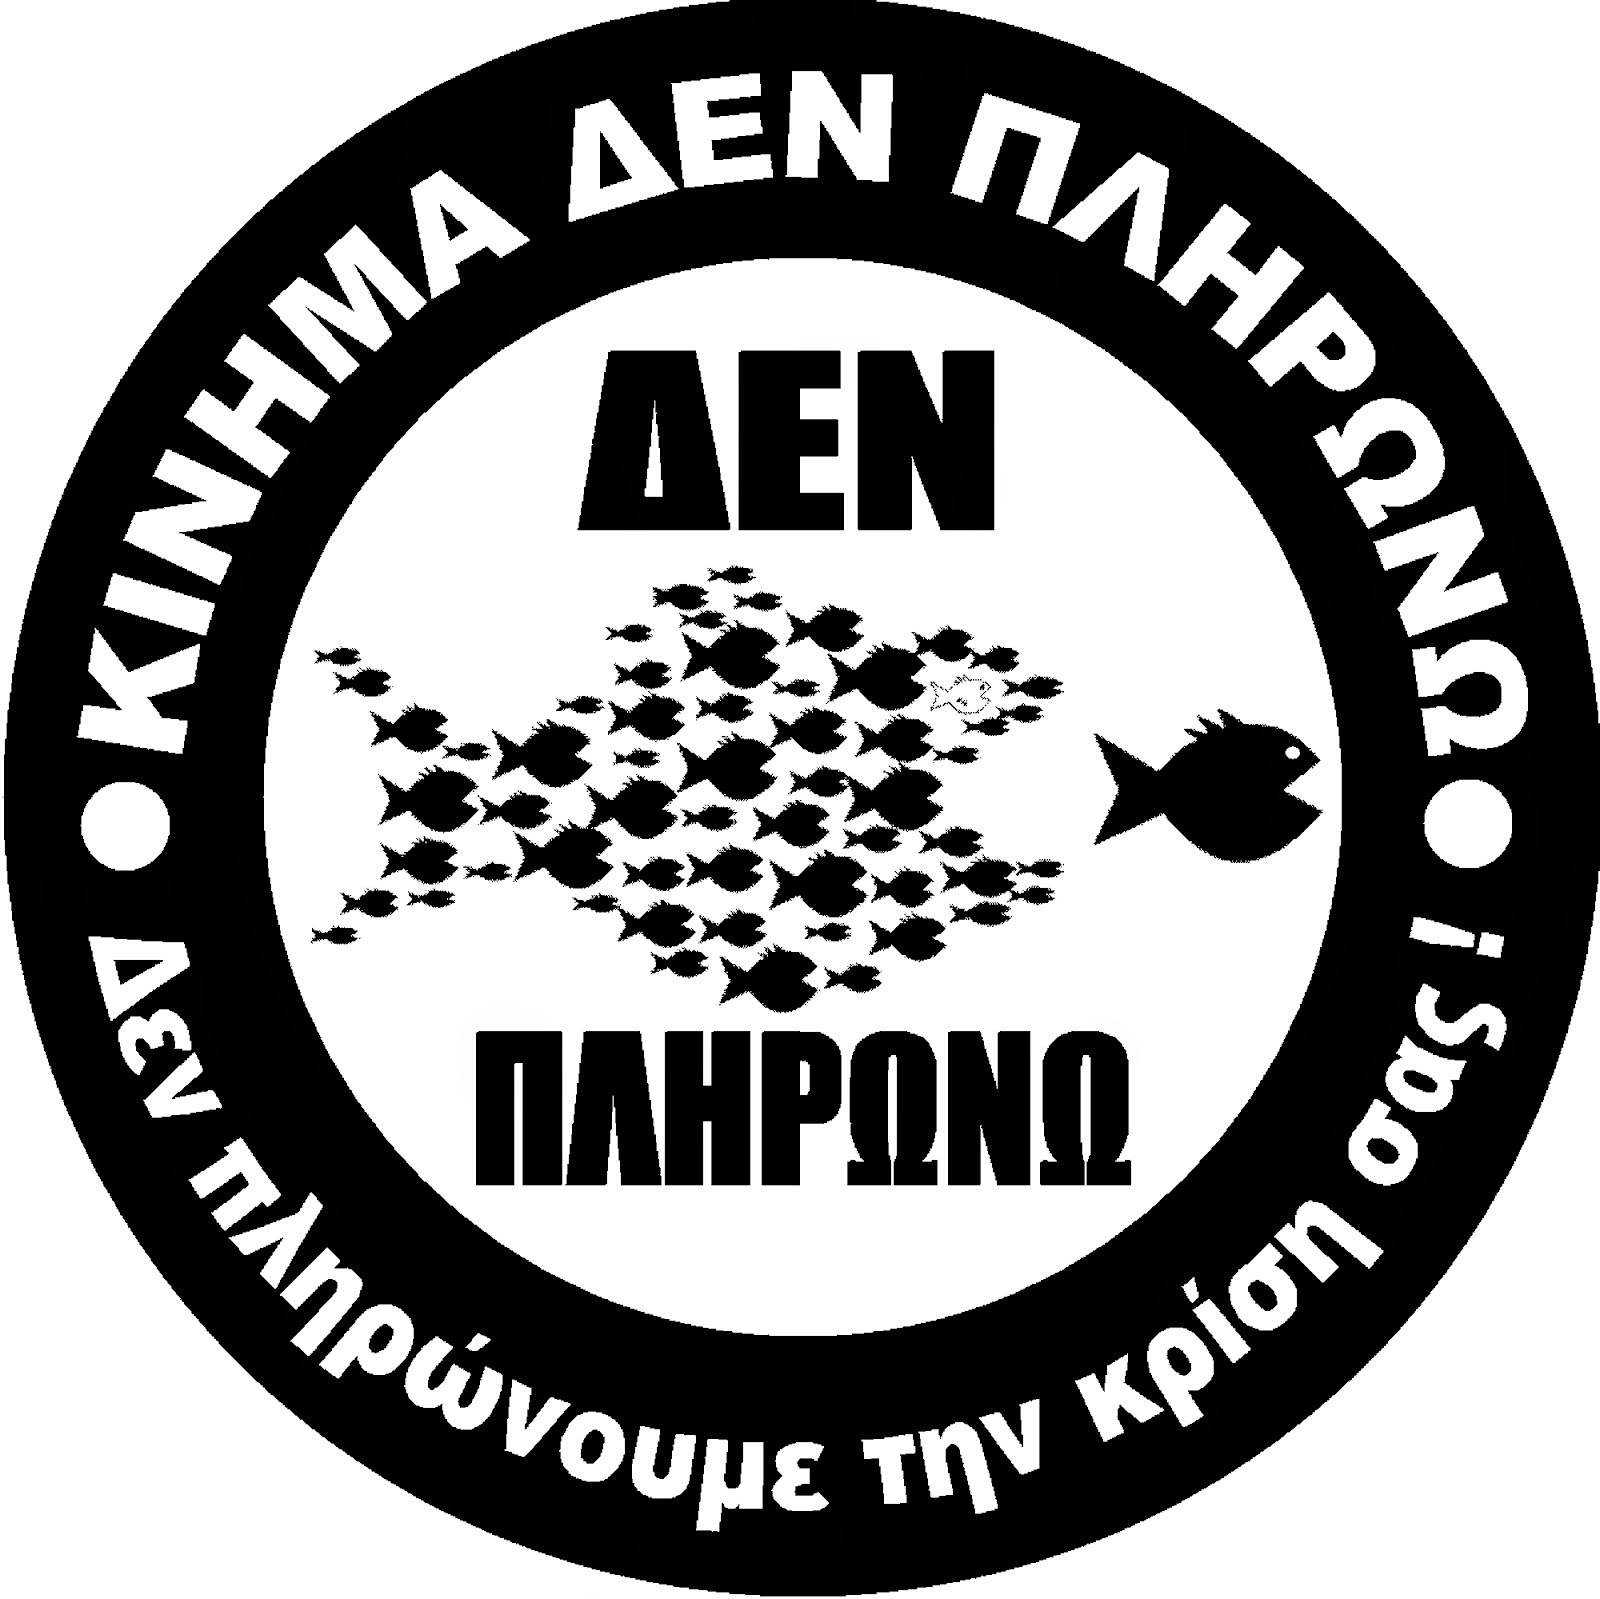 https://www.facebook.com/groups/solidarityinhealthatkinimadenplirono.eu/